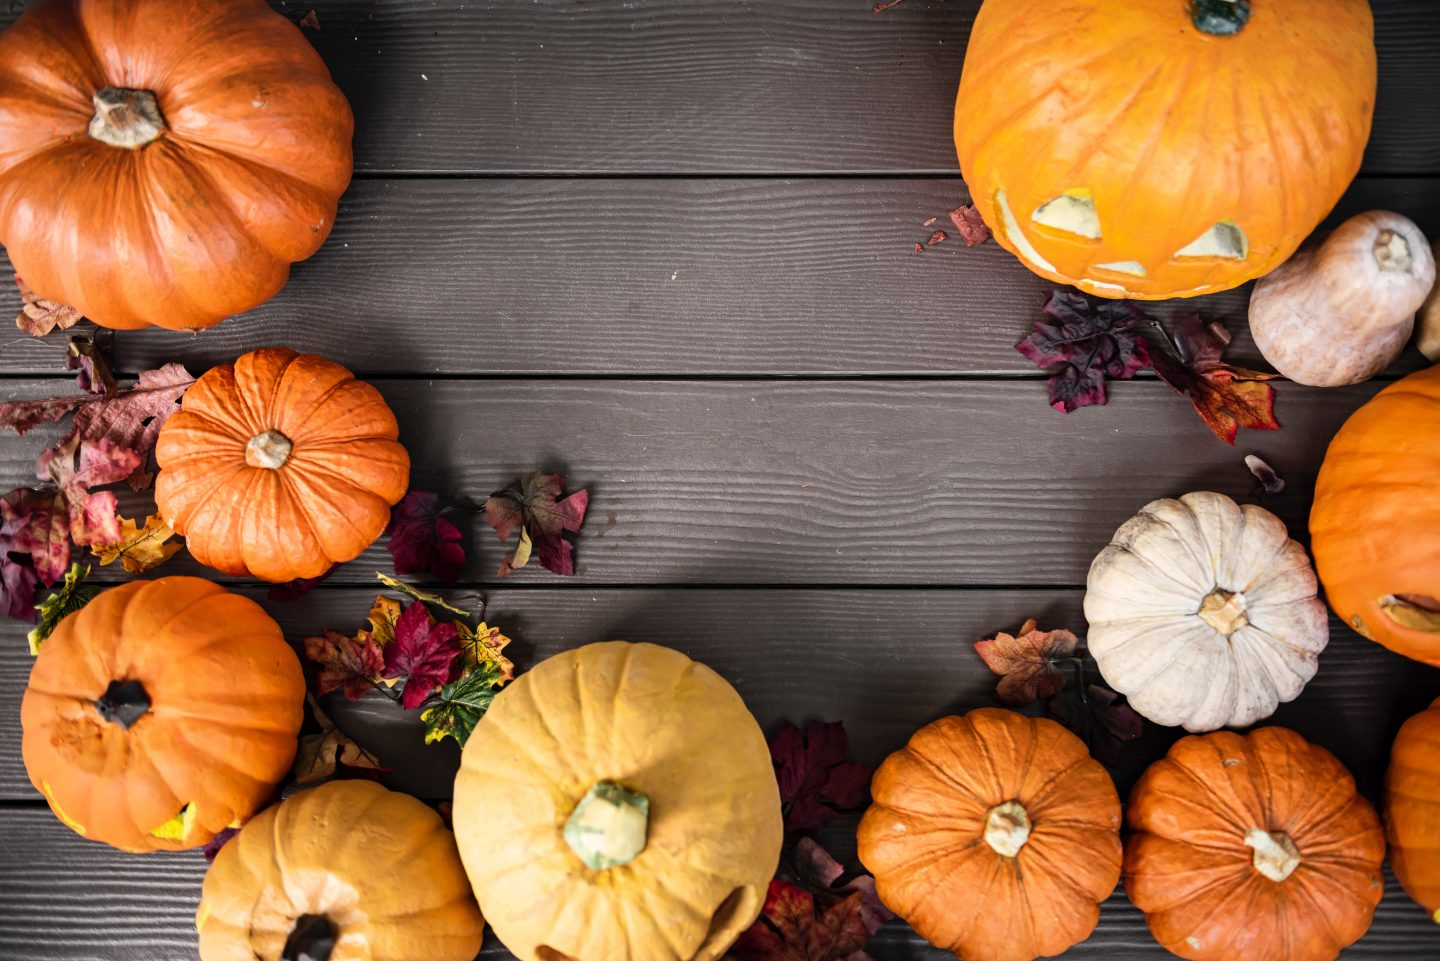 pumkins on wooden porch from above